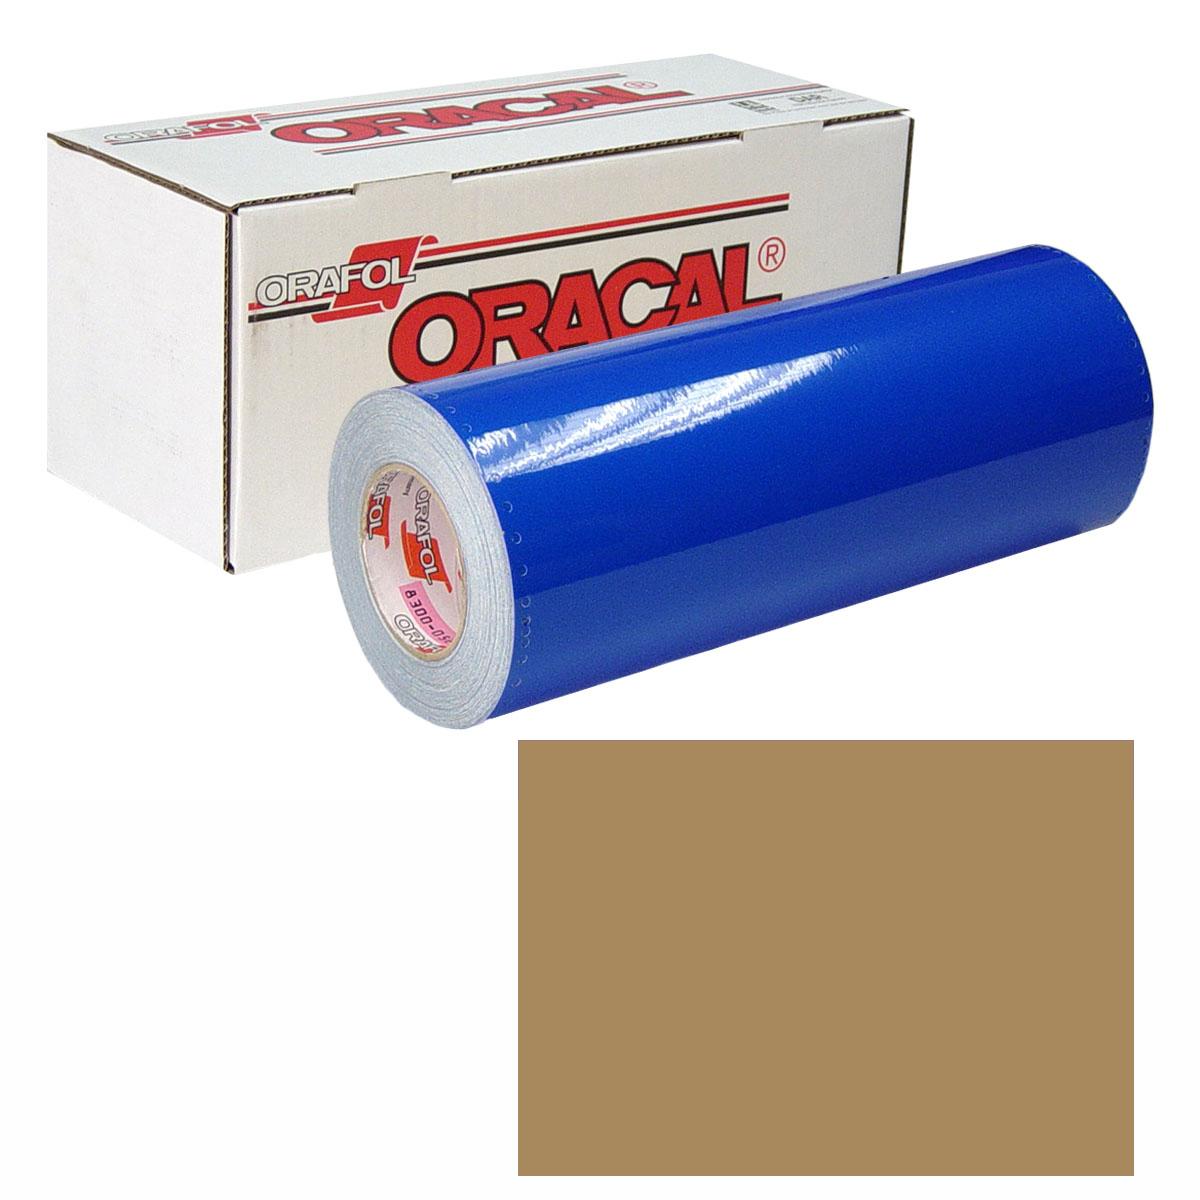 ORACAL 631 15in X 50yd 081 Light Brown